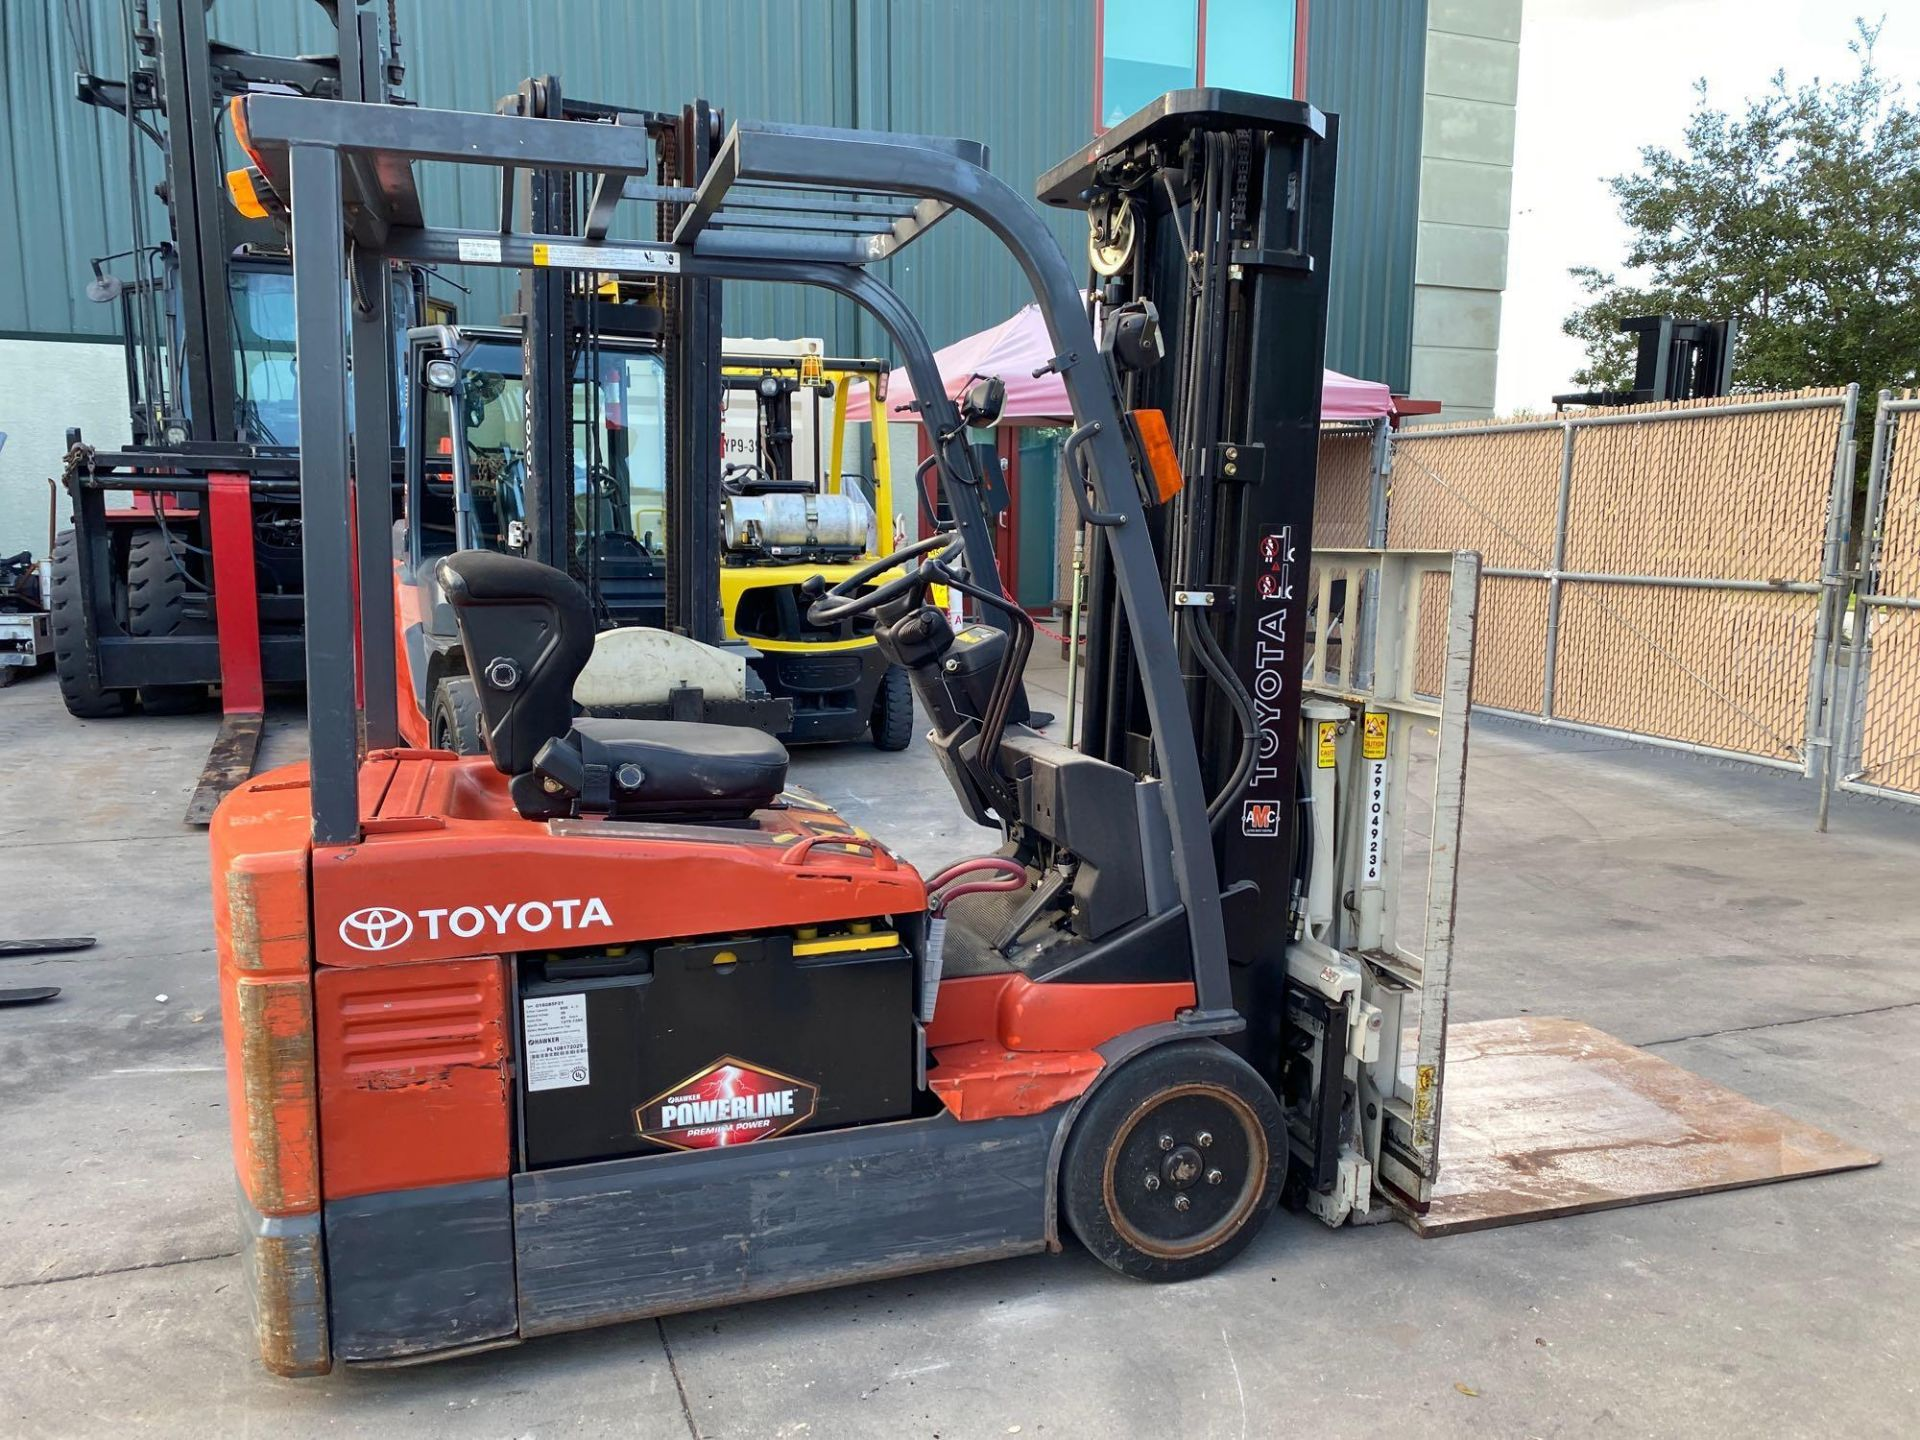 TOYOTA ELECTRIC FORKLIFT MODEL 7FBEU20, 4,000 LB CAPACITY, CASCADE PUSH/PULL ATTACHMENT, TILT, SIDE - Image 11 of 24